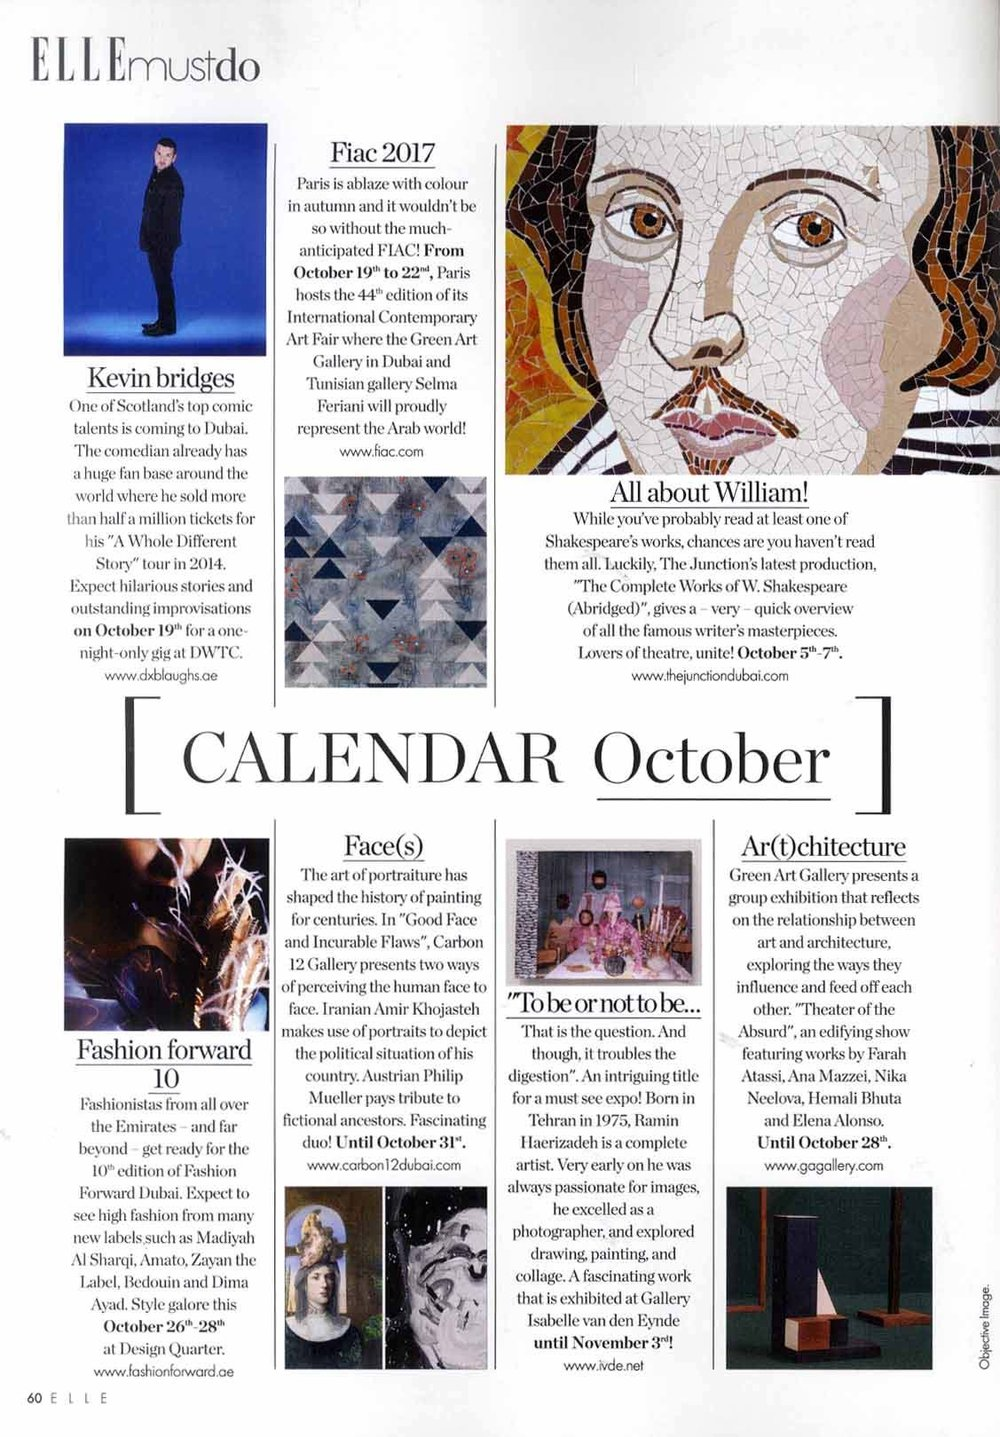 Elle Arab World.Calendar.Oct.jpg